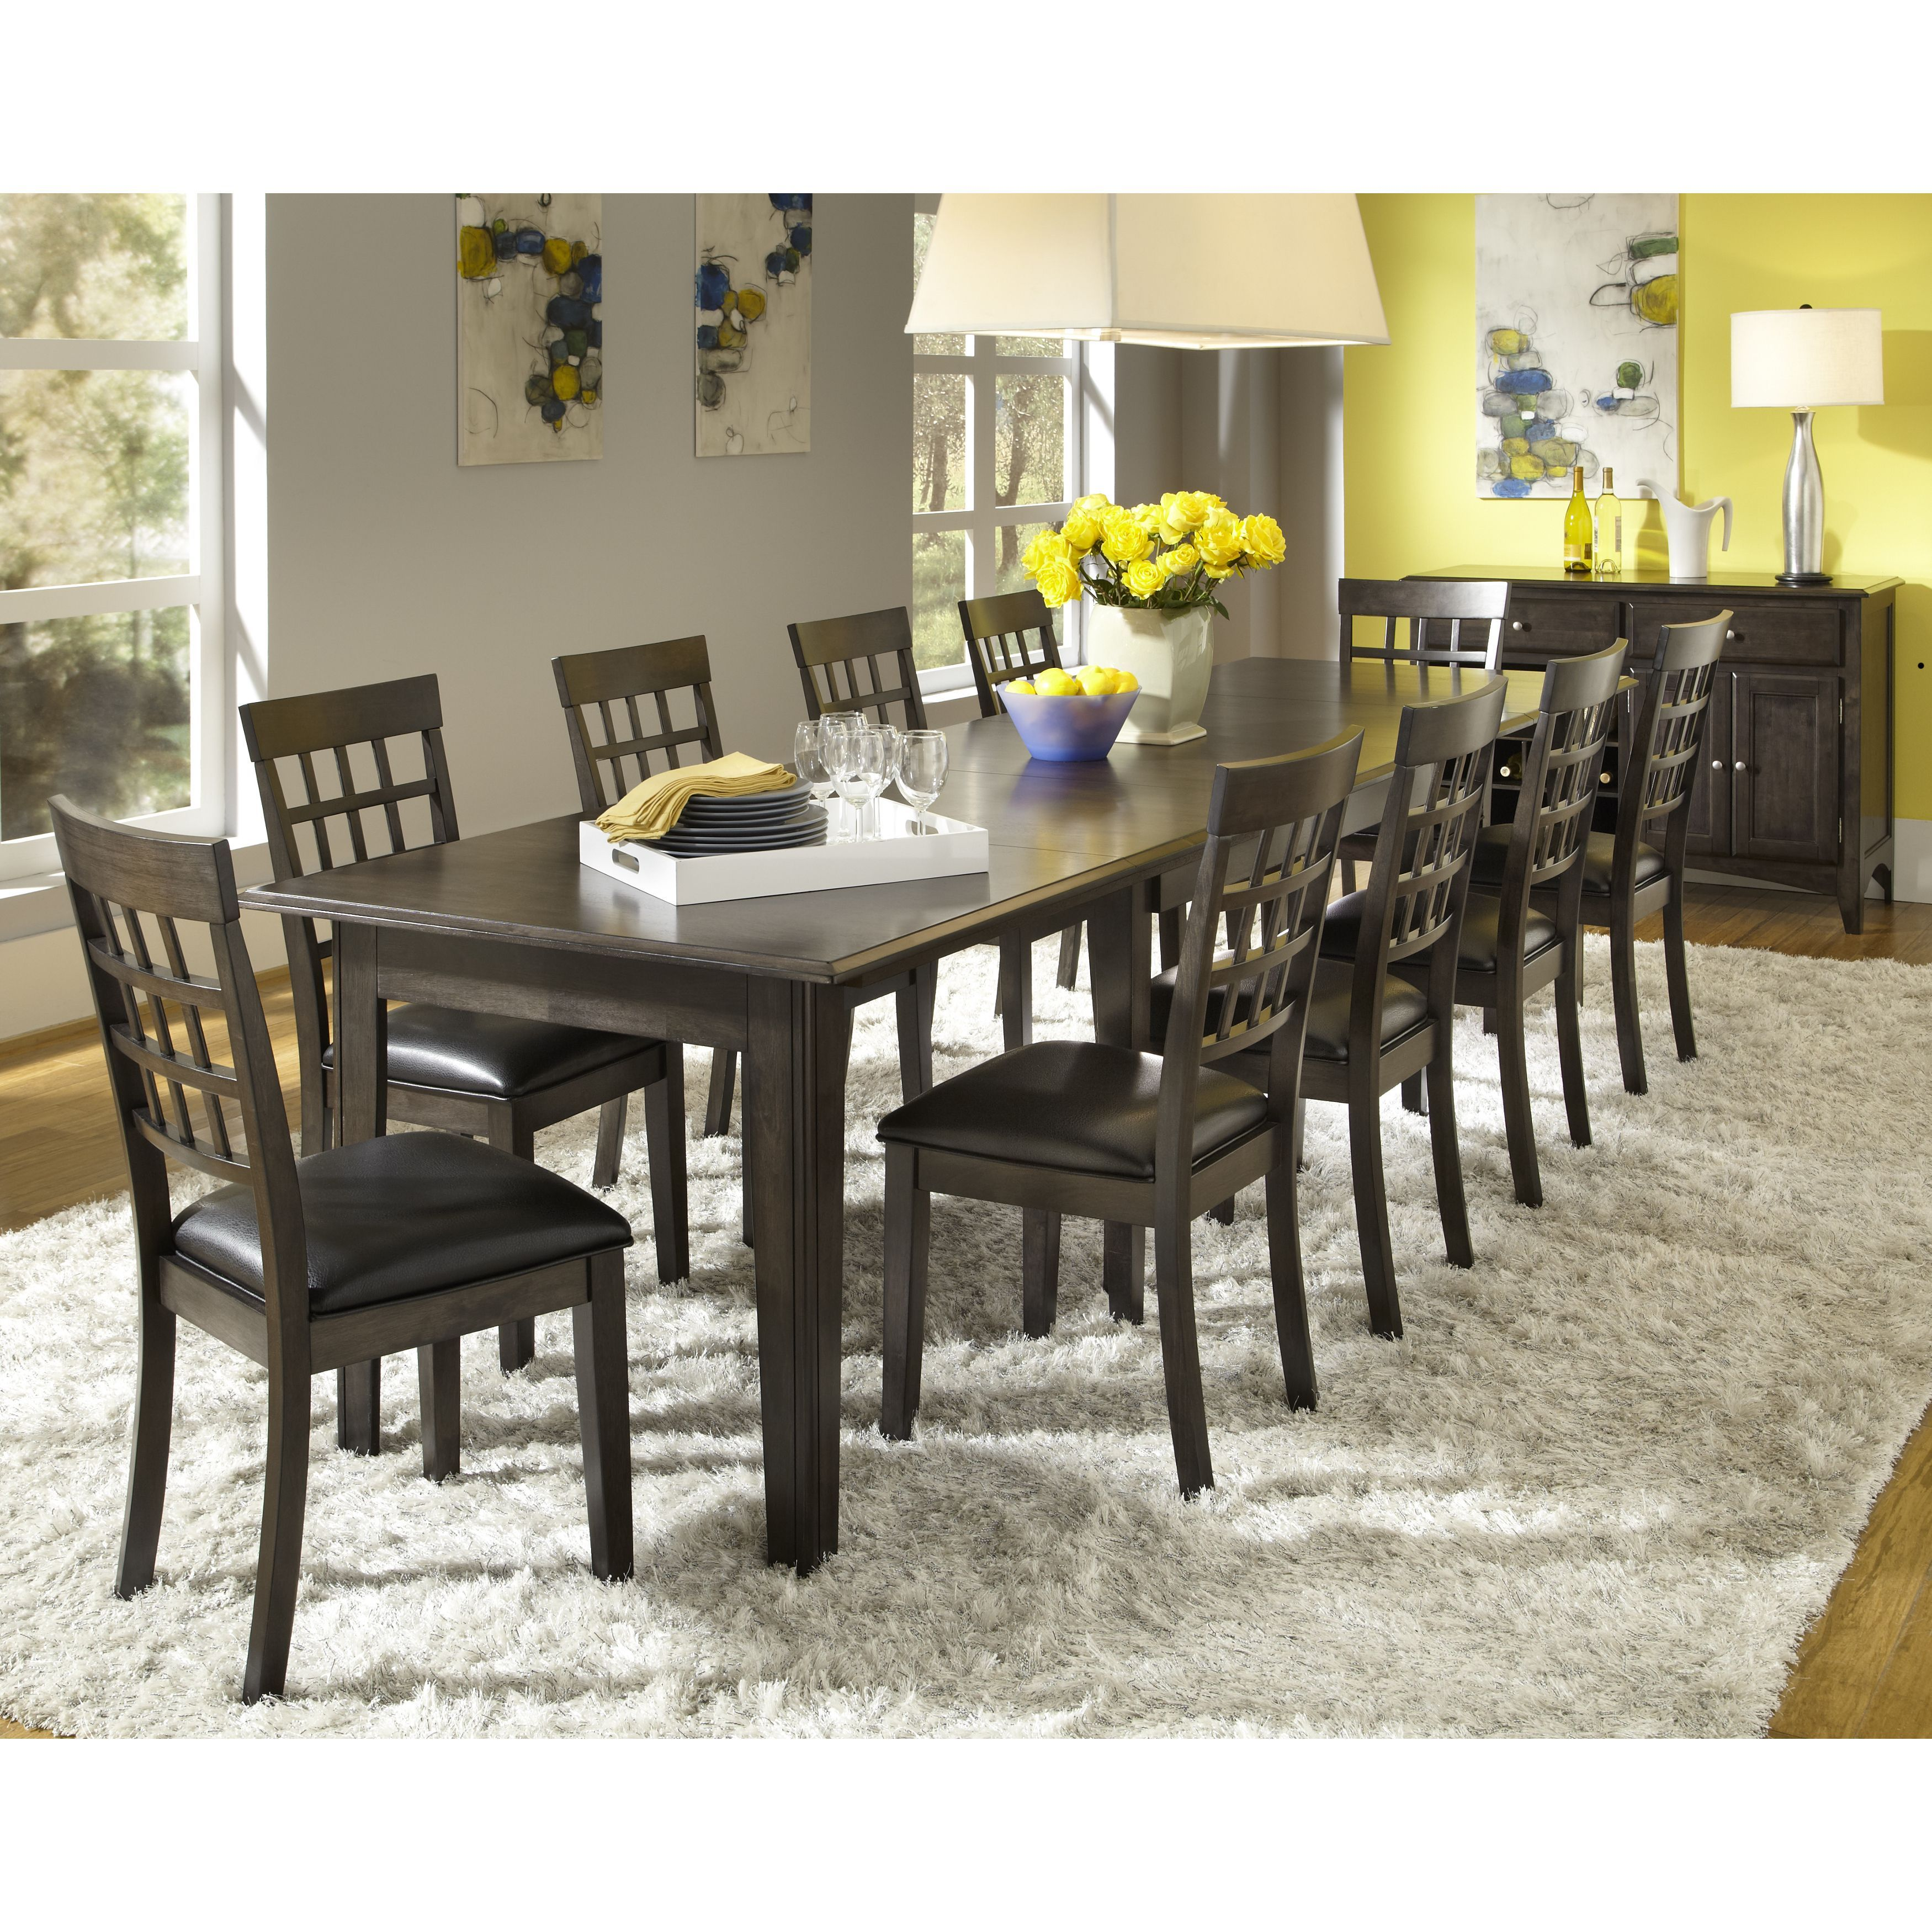 Simply Solid Corina Solid Wood 10Piece Dining Collection Dining Amazing Size Of Dining Room Table For 10 Inspiration